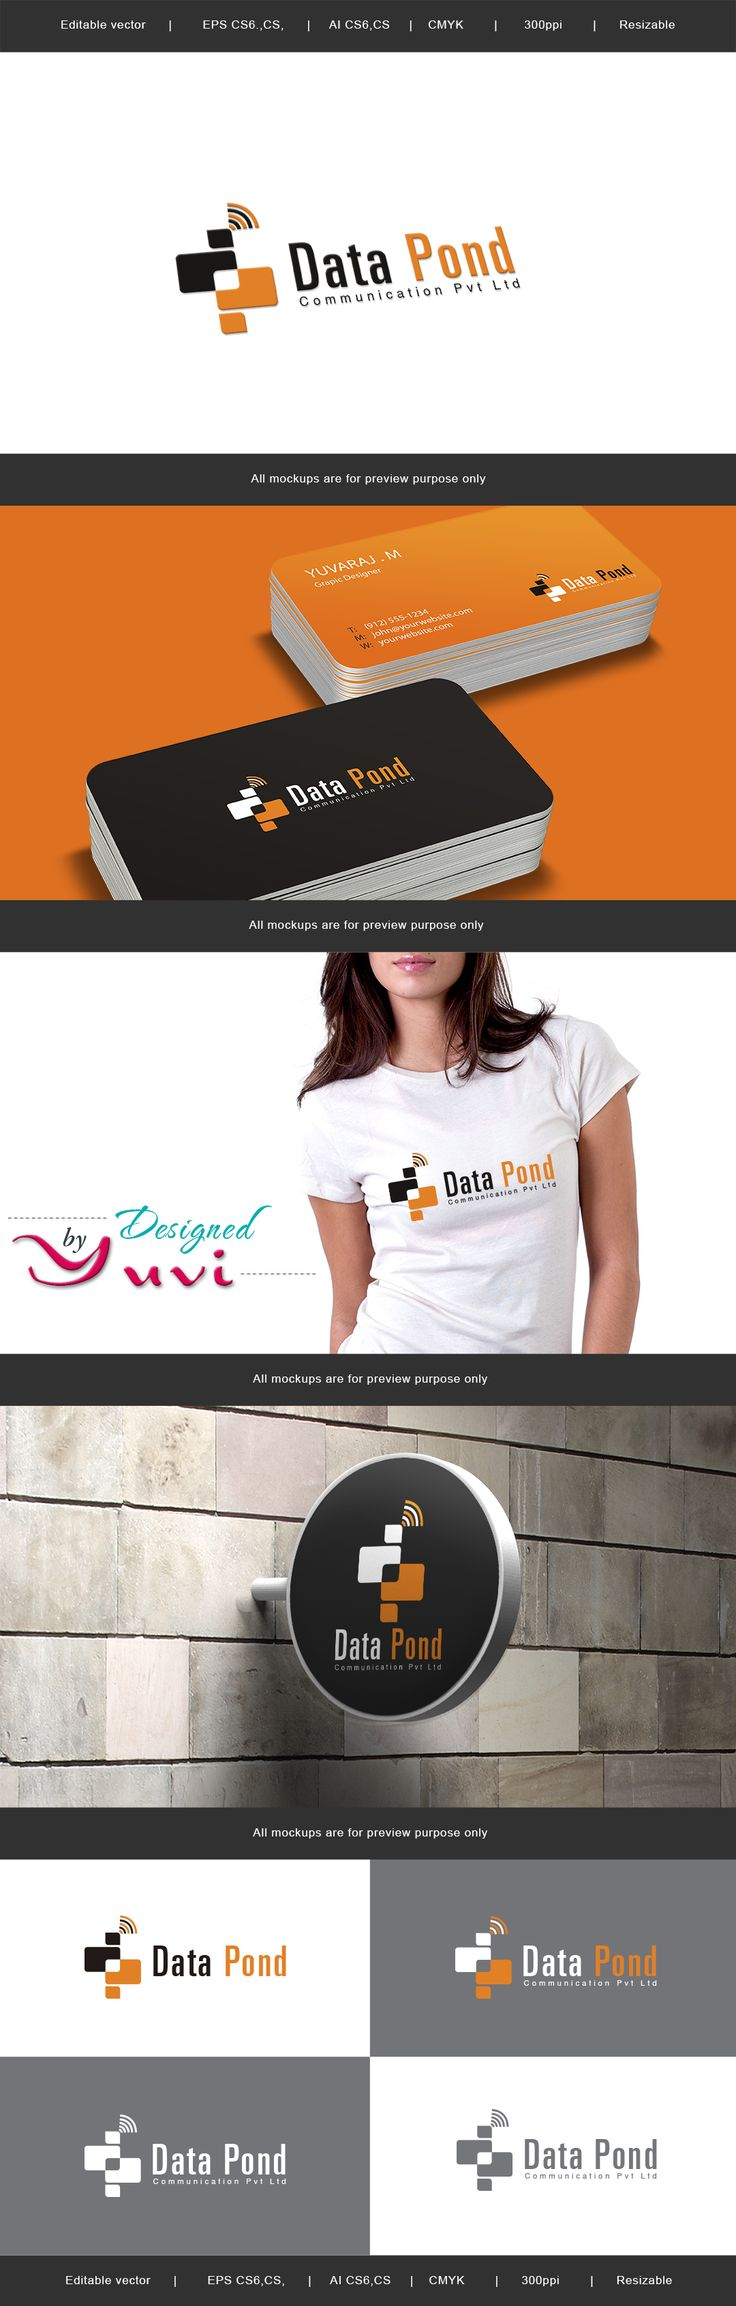 ... best images about Logo on Pinterest | Logos, Pharmacy and Presentation